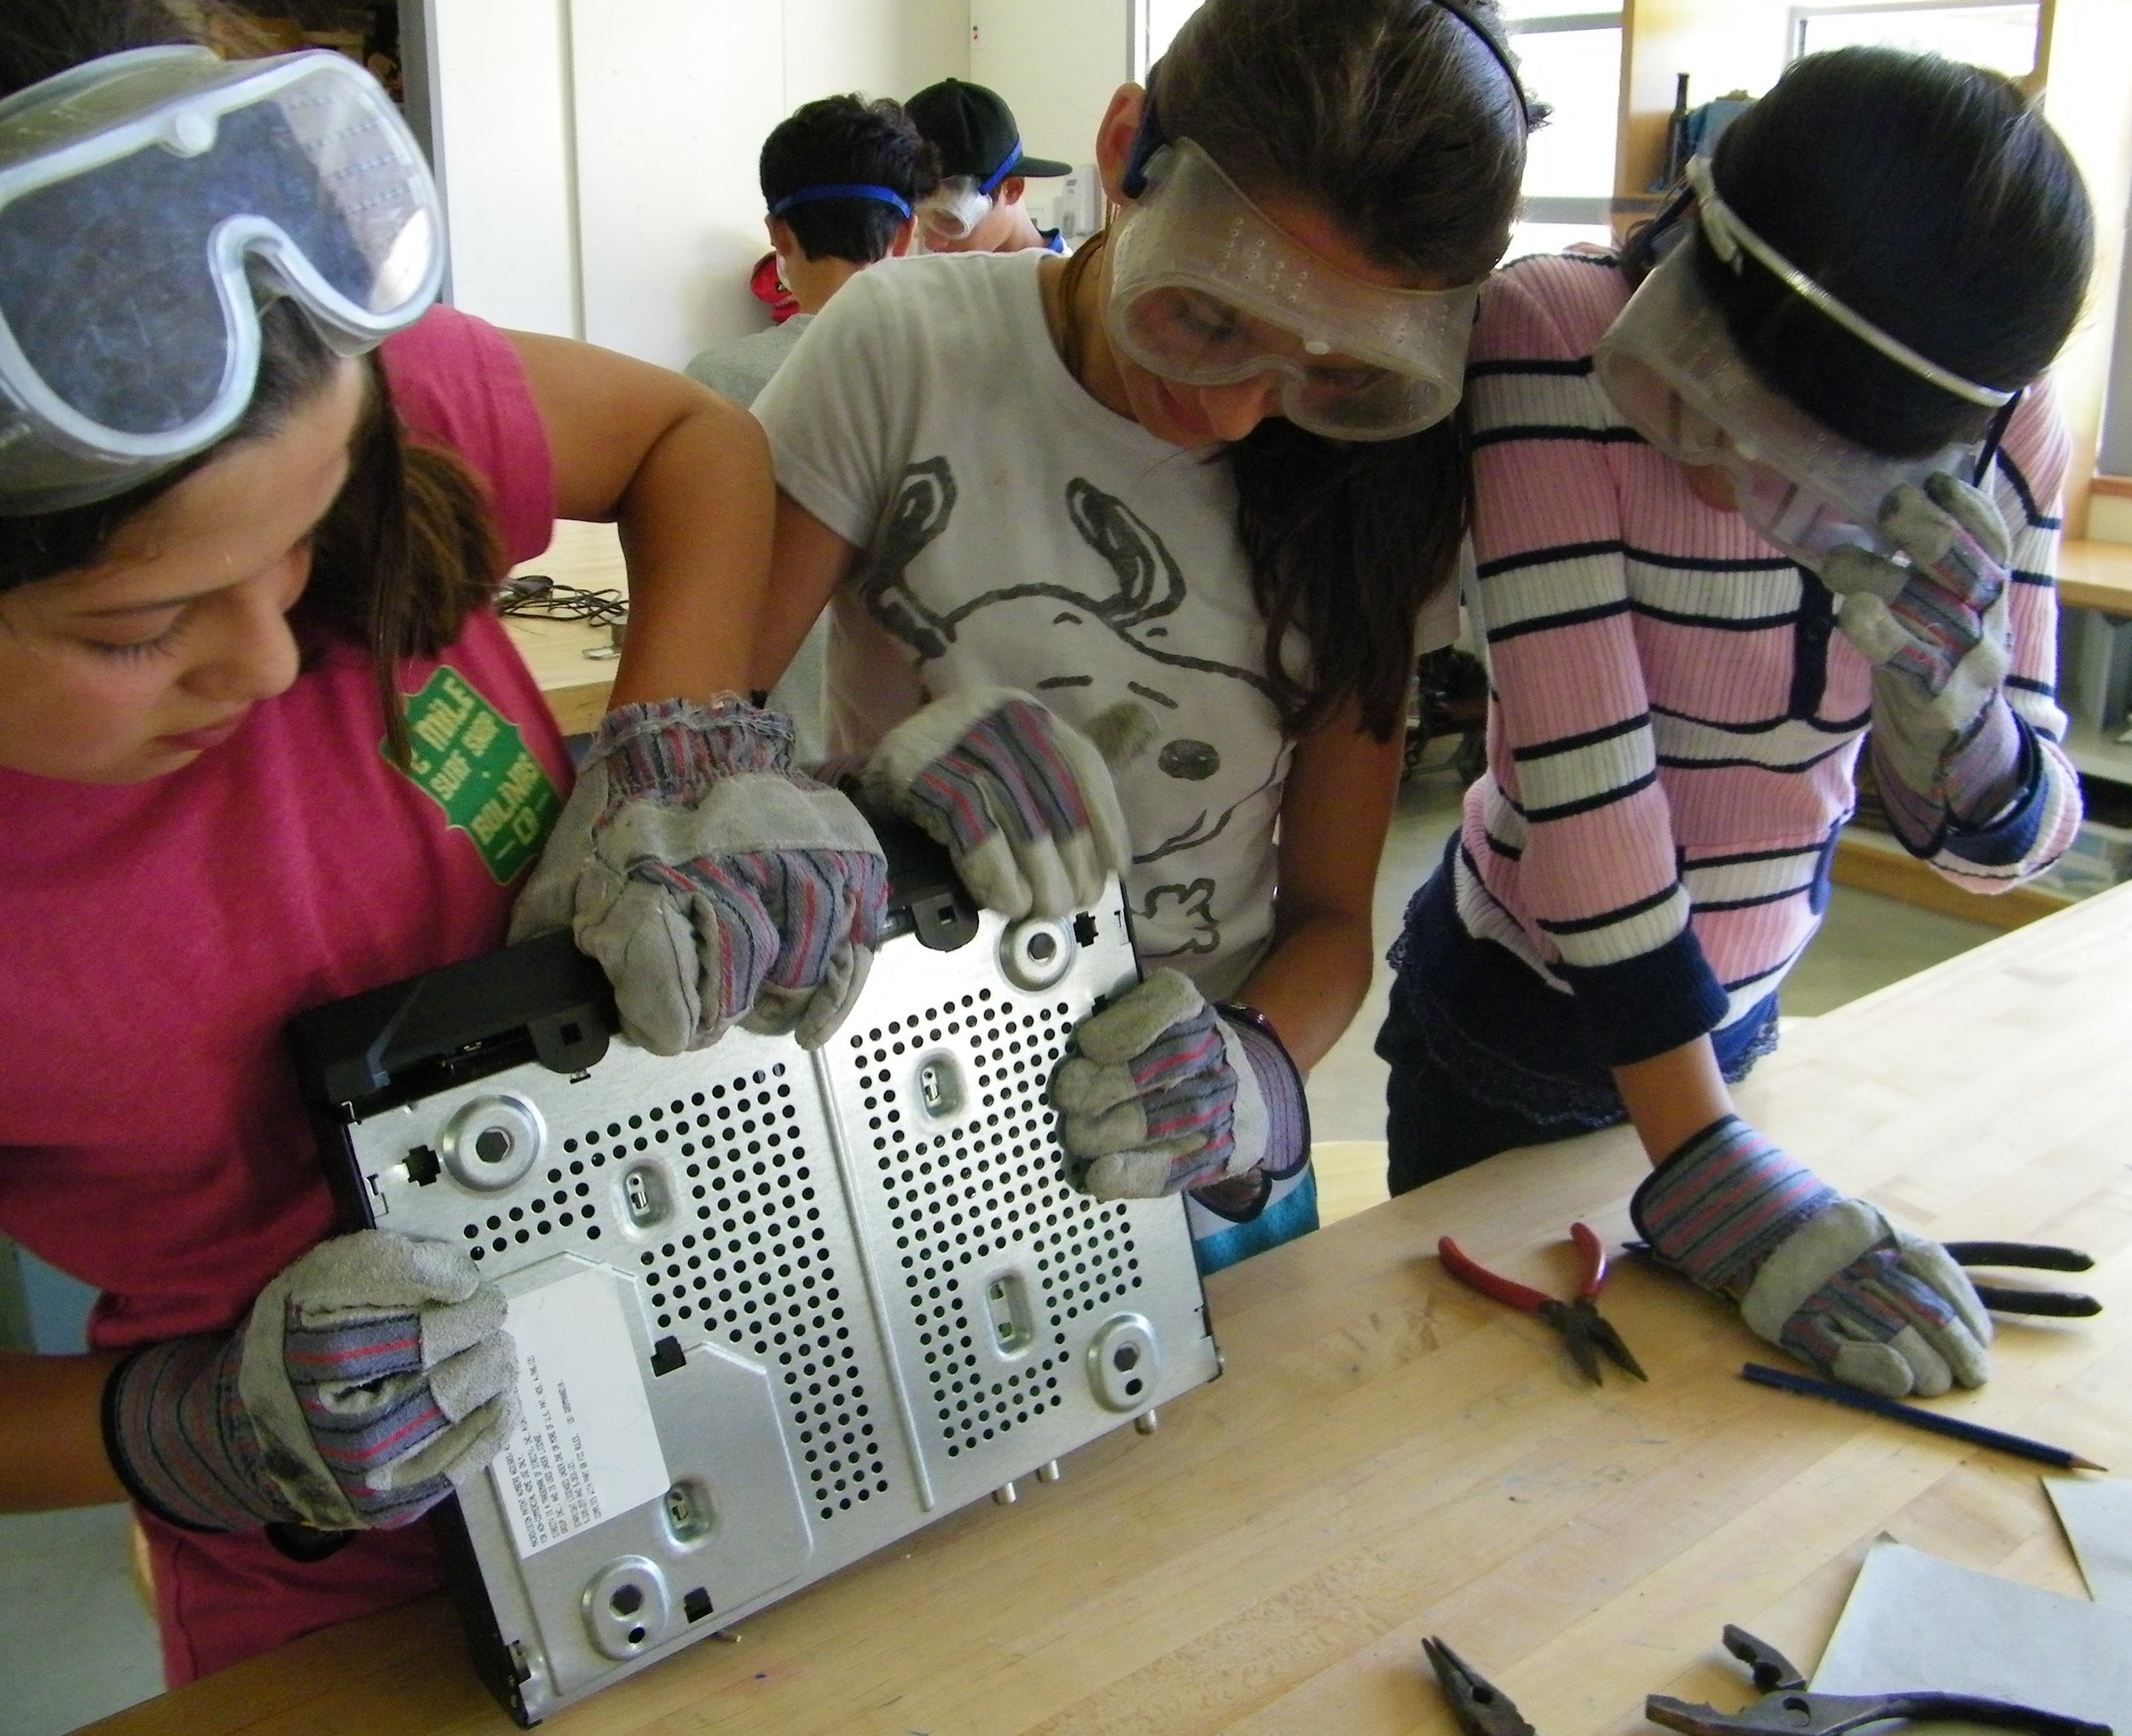 Students had no fear in taking apart small machines that were used as a starting point for a contour drawings and recycled parts sculptures.